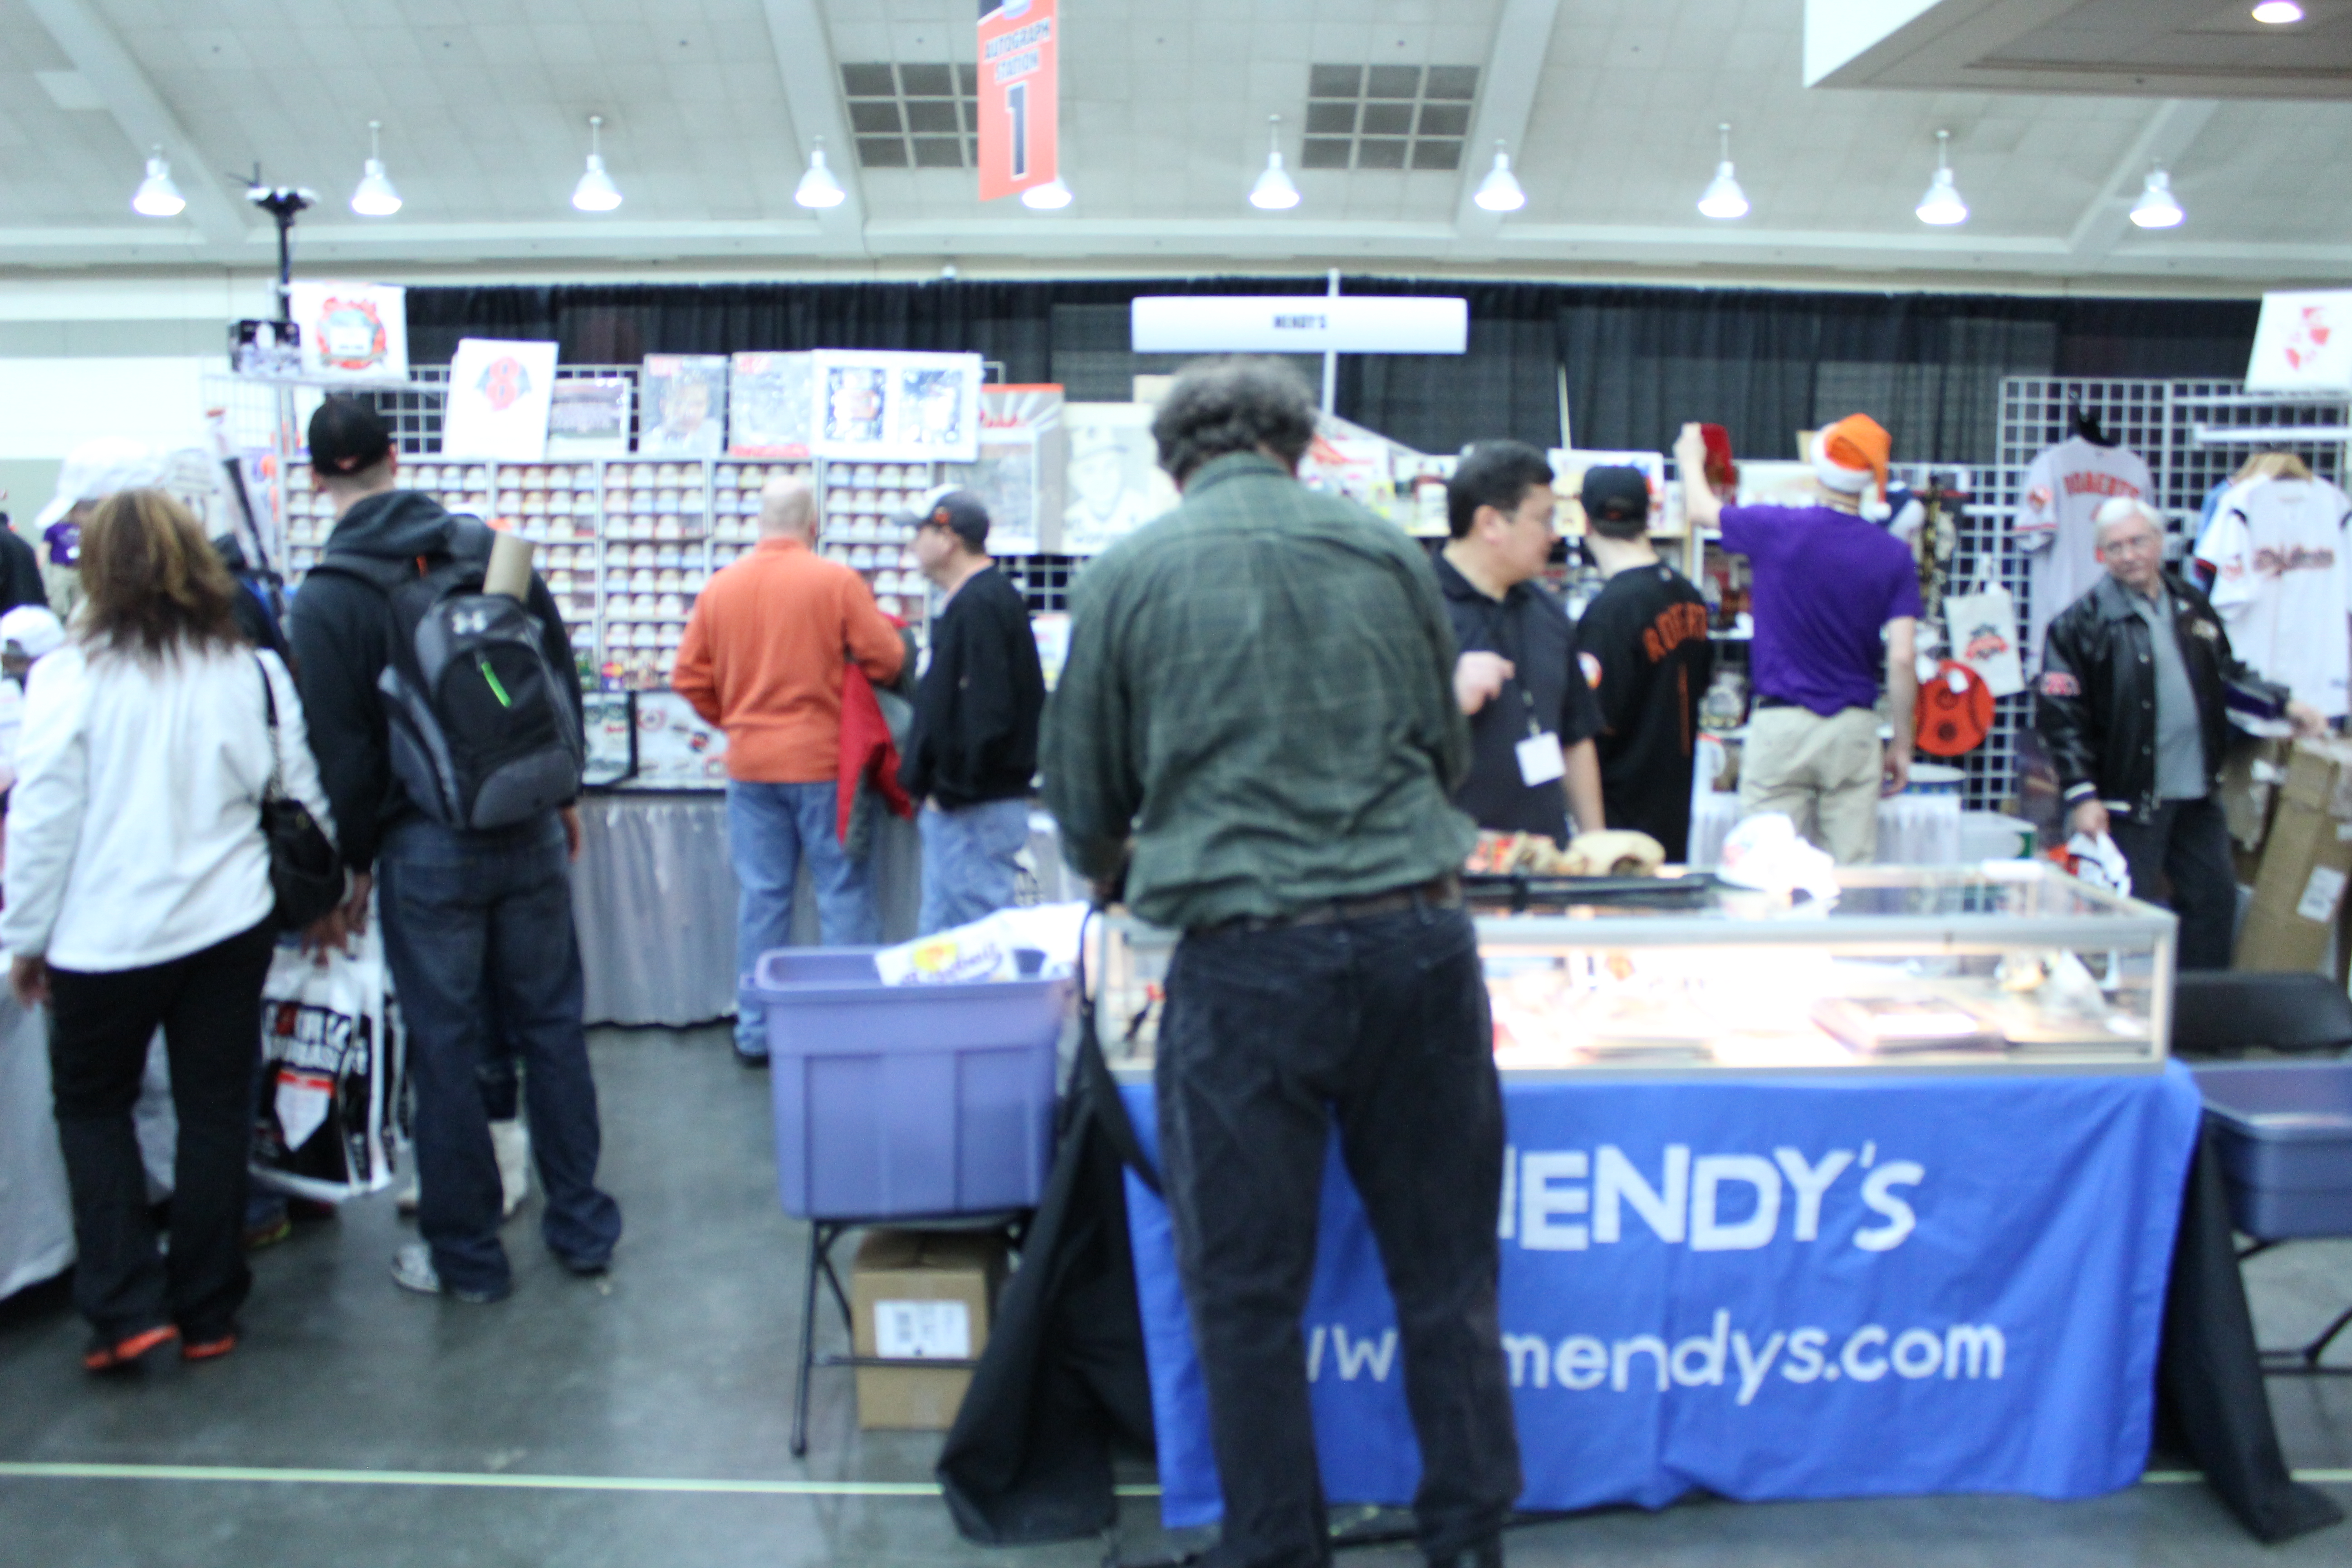 Mendys booth again